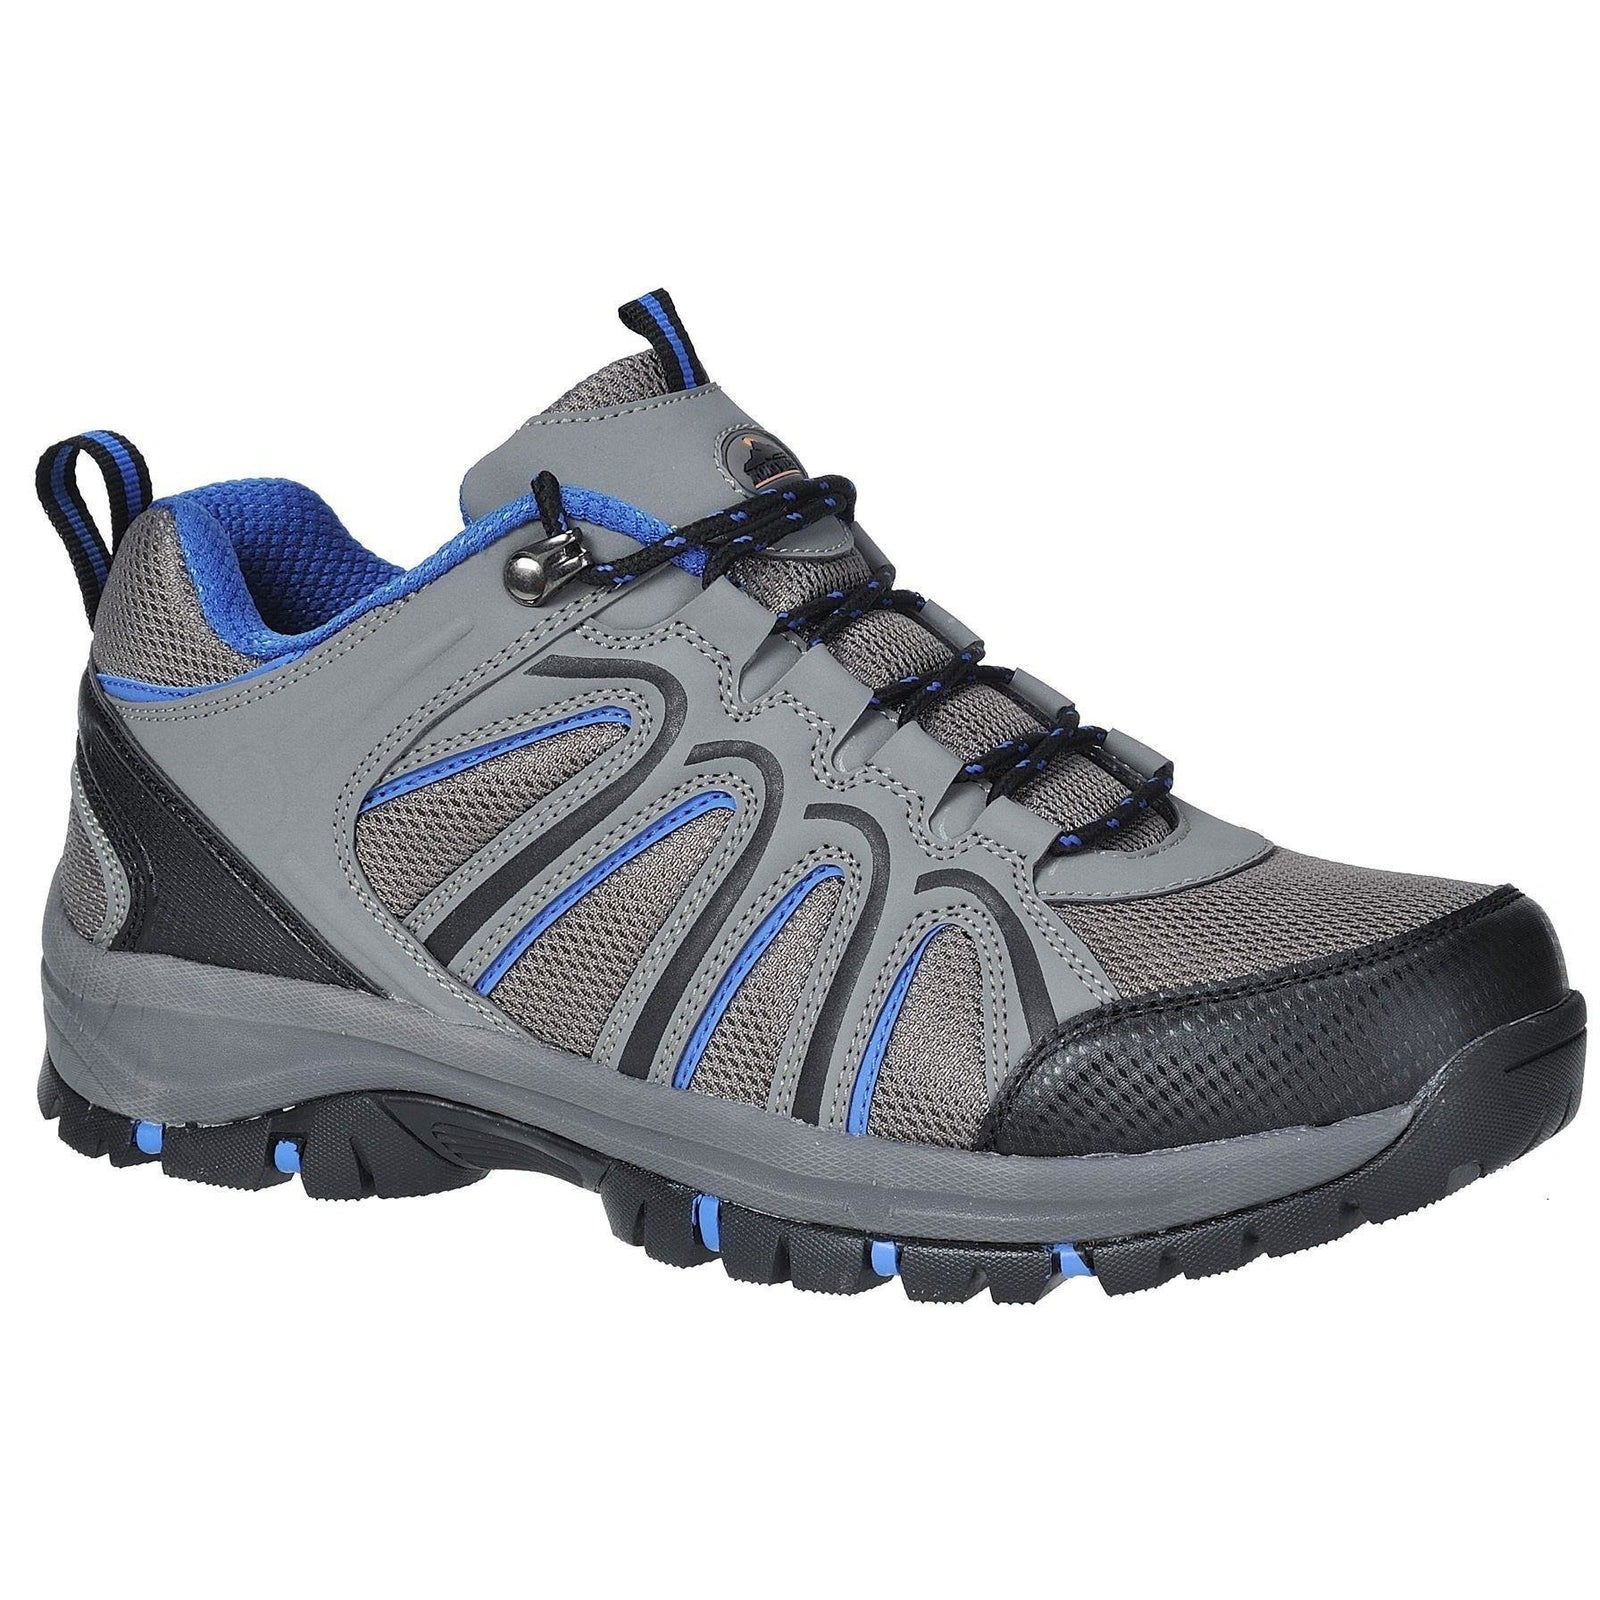 Portwest Nebraska Low Cut Trainer FW67 - reid outdoors